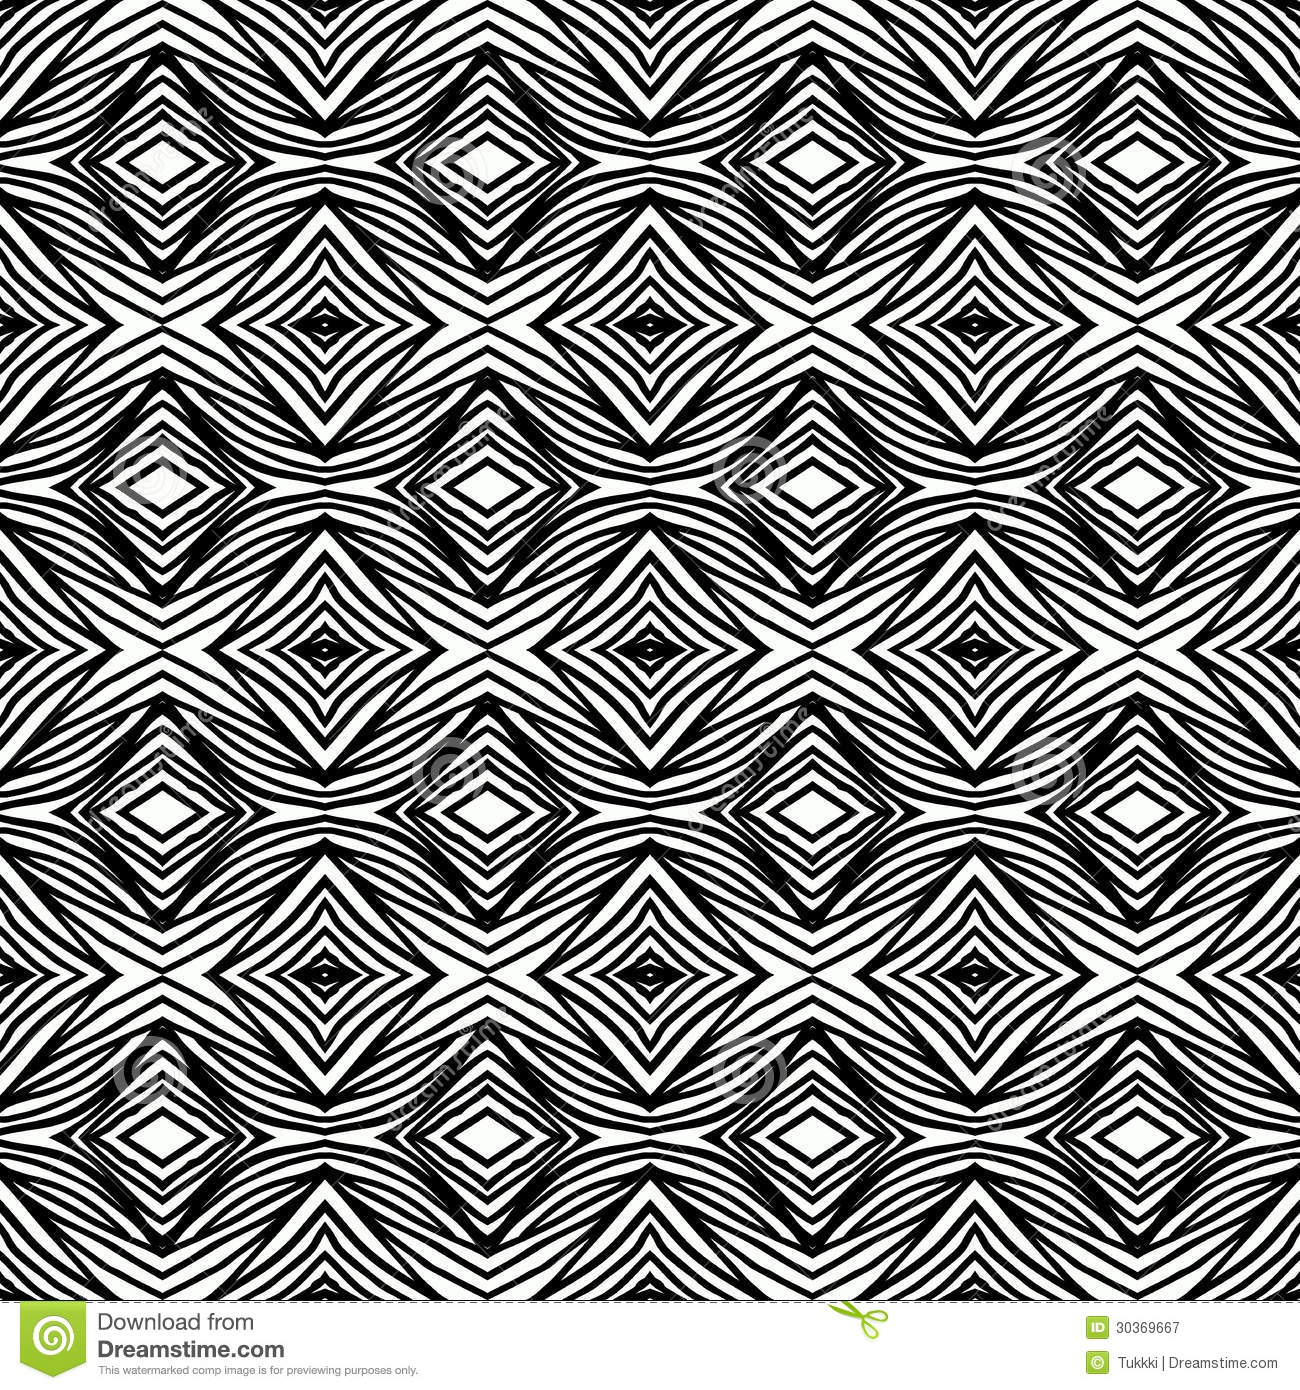 Patterns Images Stock Photos amp Vectors  Shutterstock